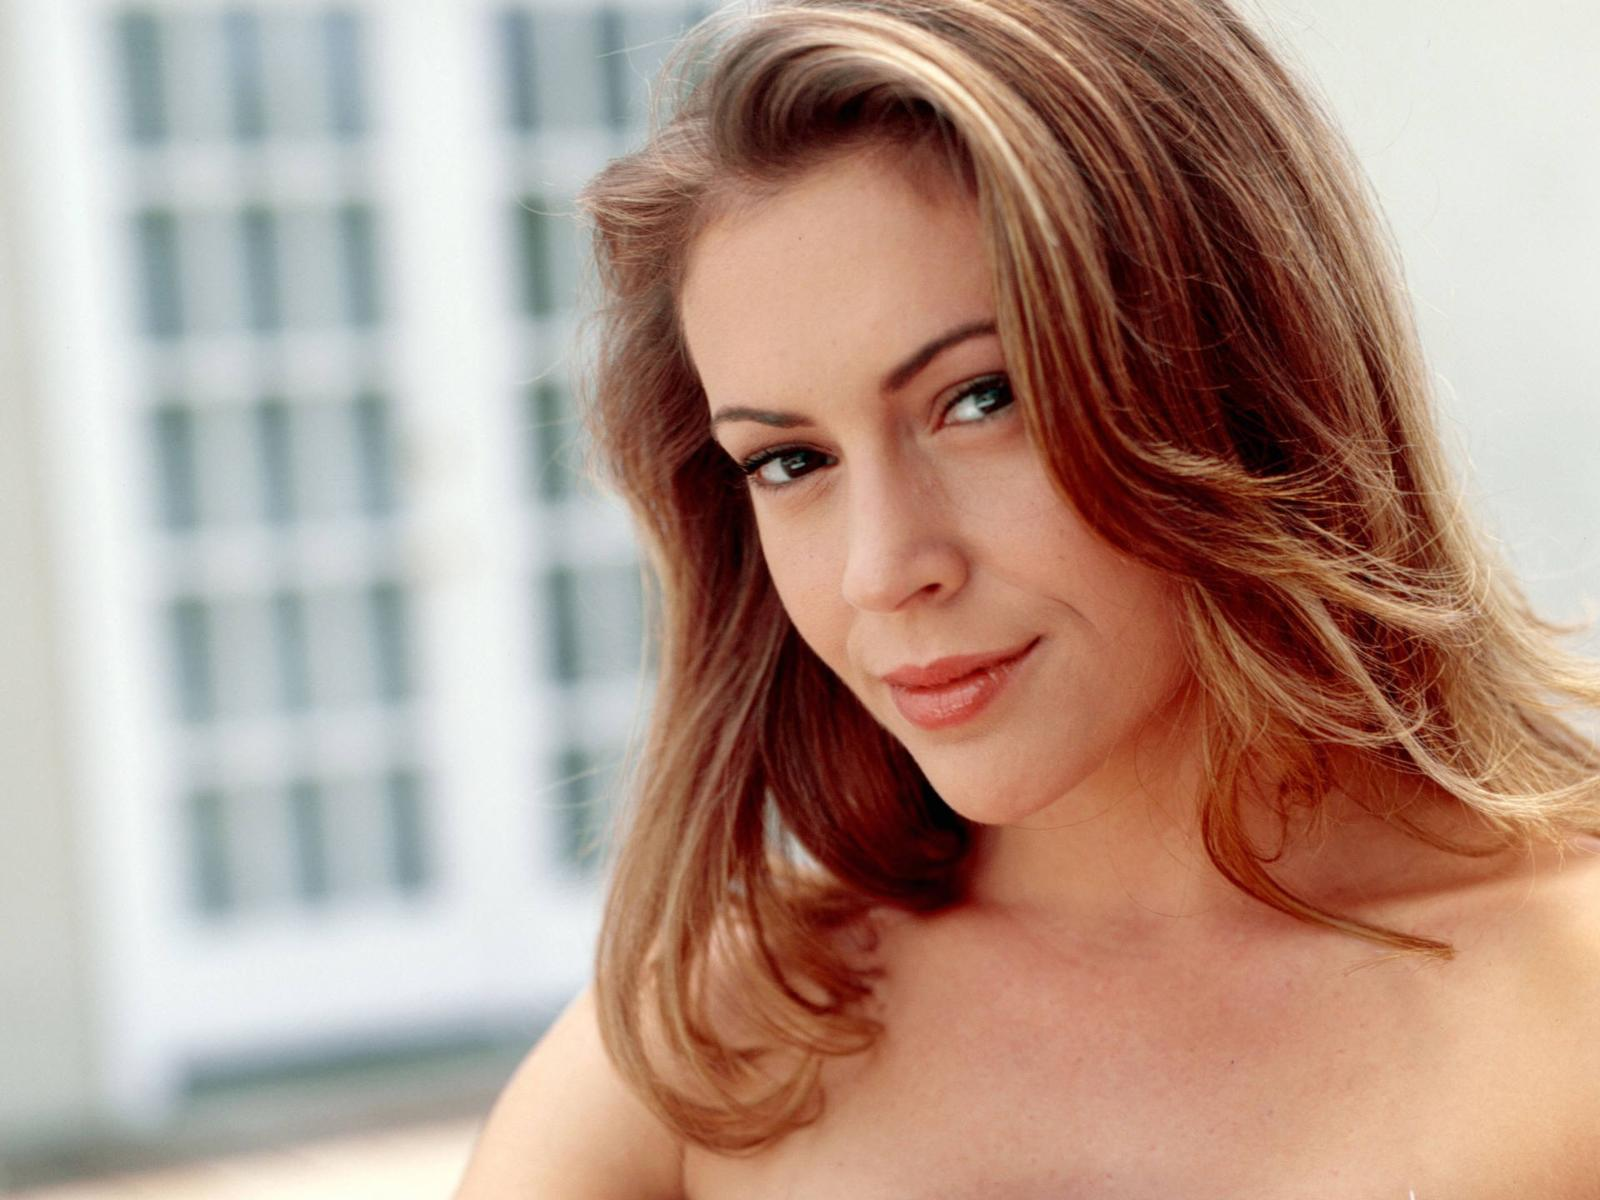 Alyssa Milano wallpaper, alyssa milano red carpet, alyssa milano news, alyssa milano wallpaper widescreen-22